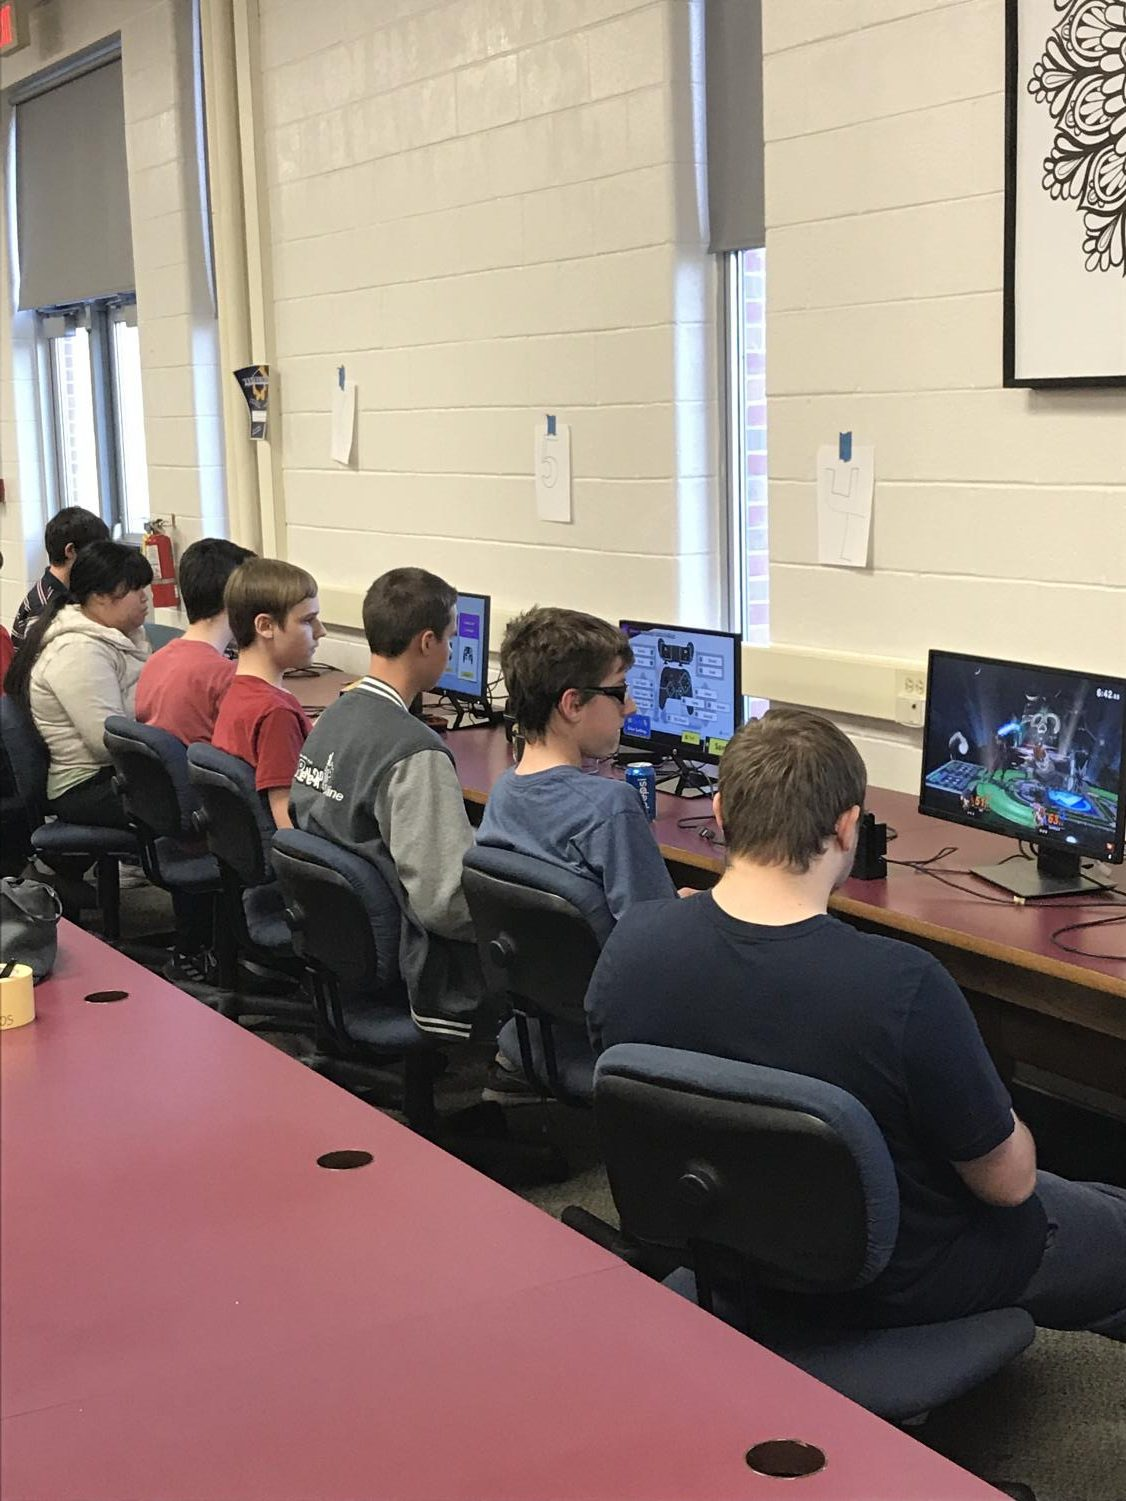 The Games Club tournament took over an entire wall of the Media Center